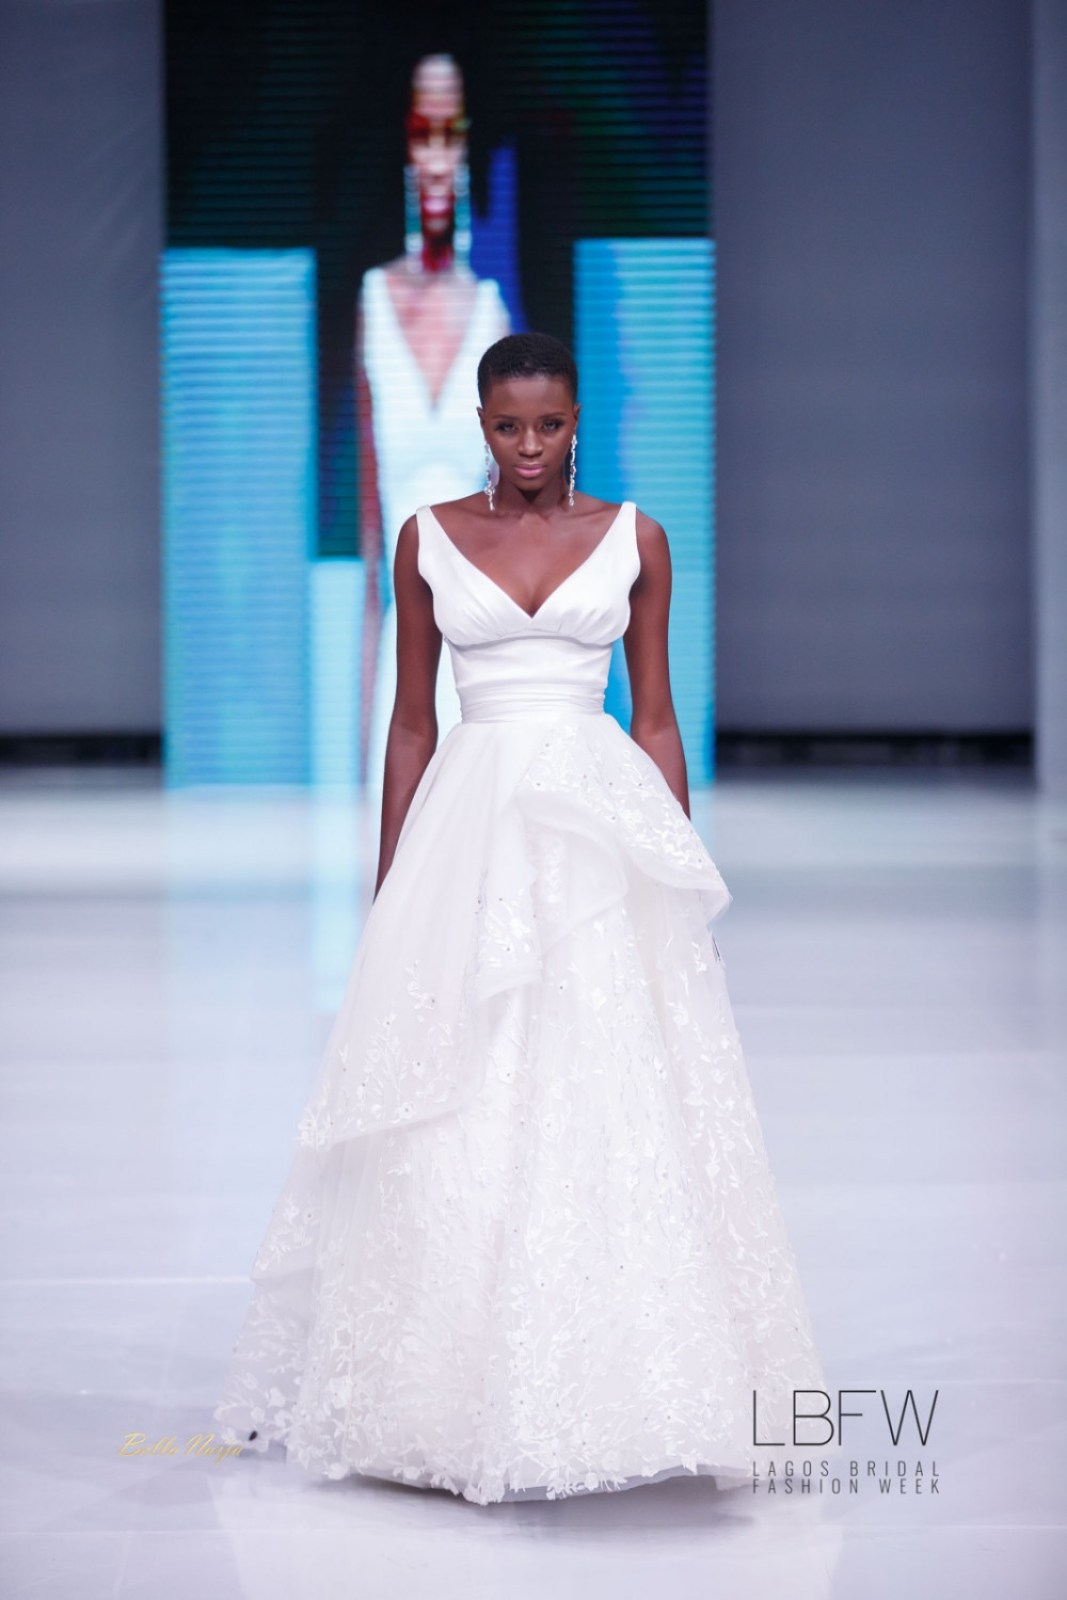 Lagos bridal fashion week